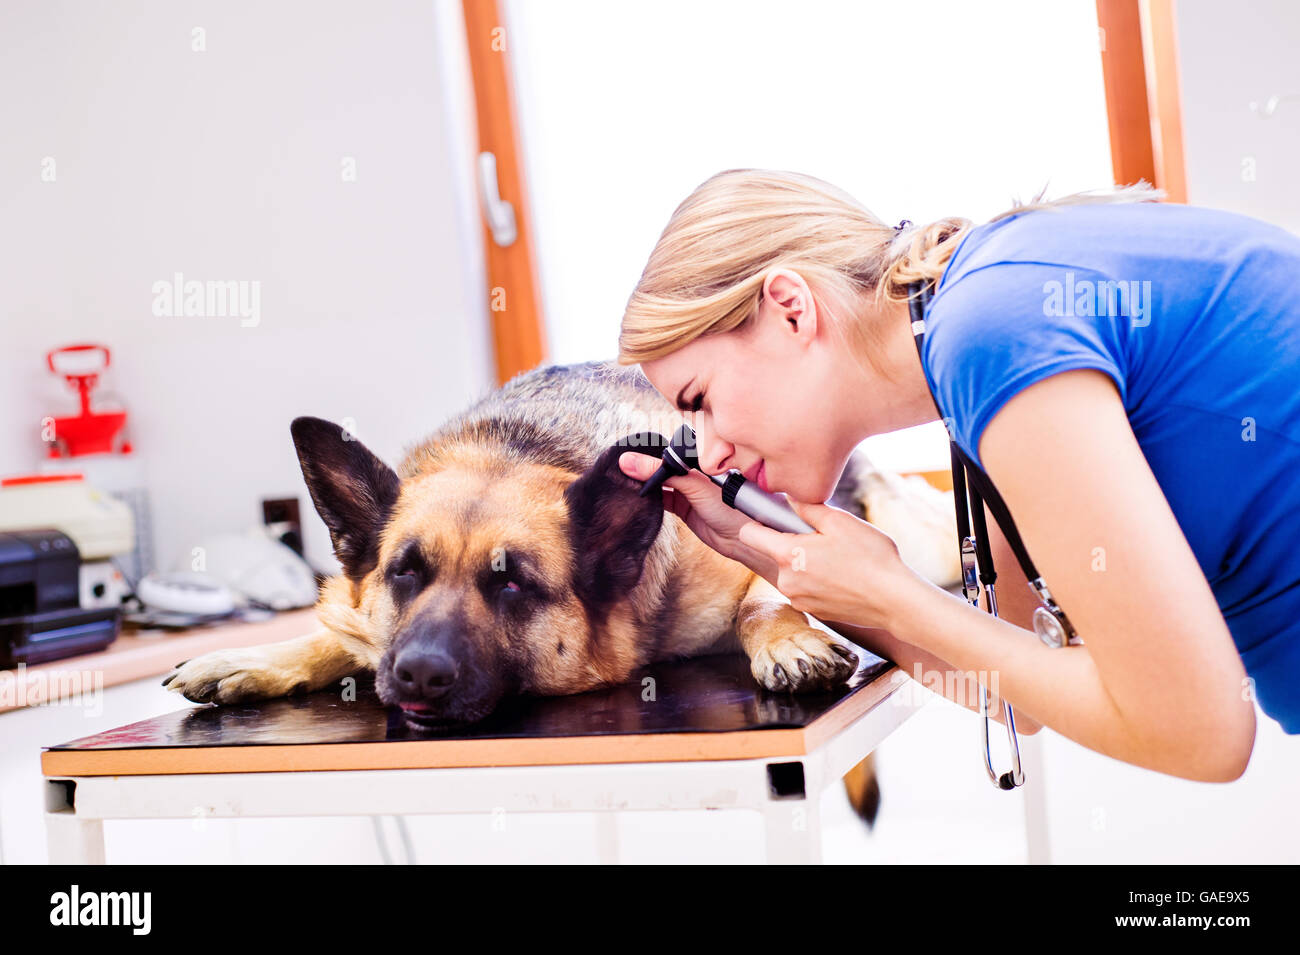 Veterinarian examining German Shepherd dog with sore ear. - Stock Image